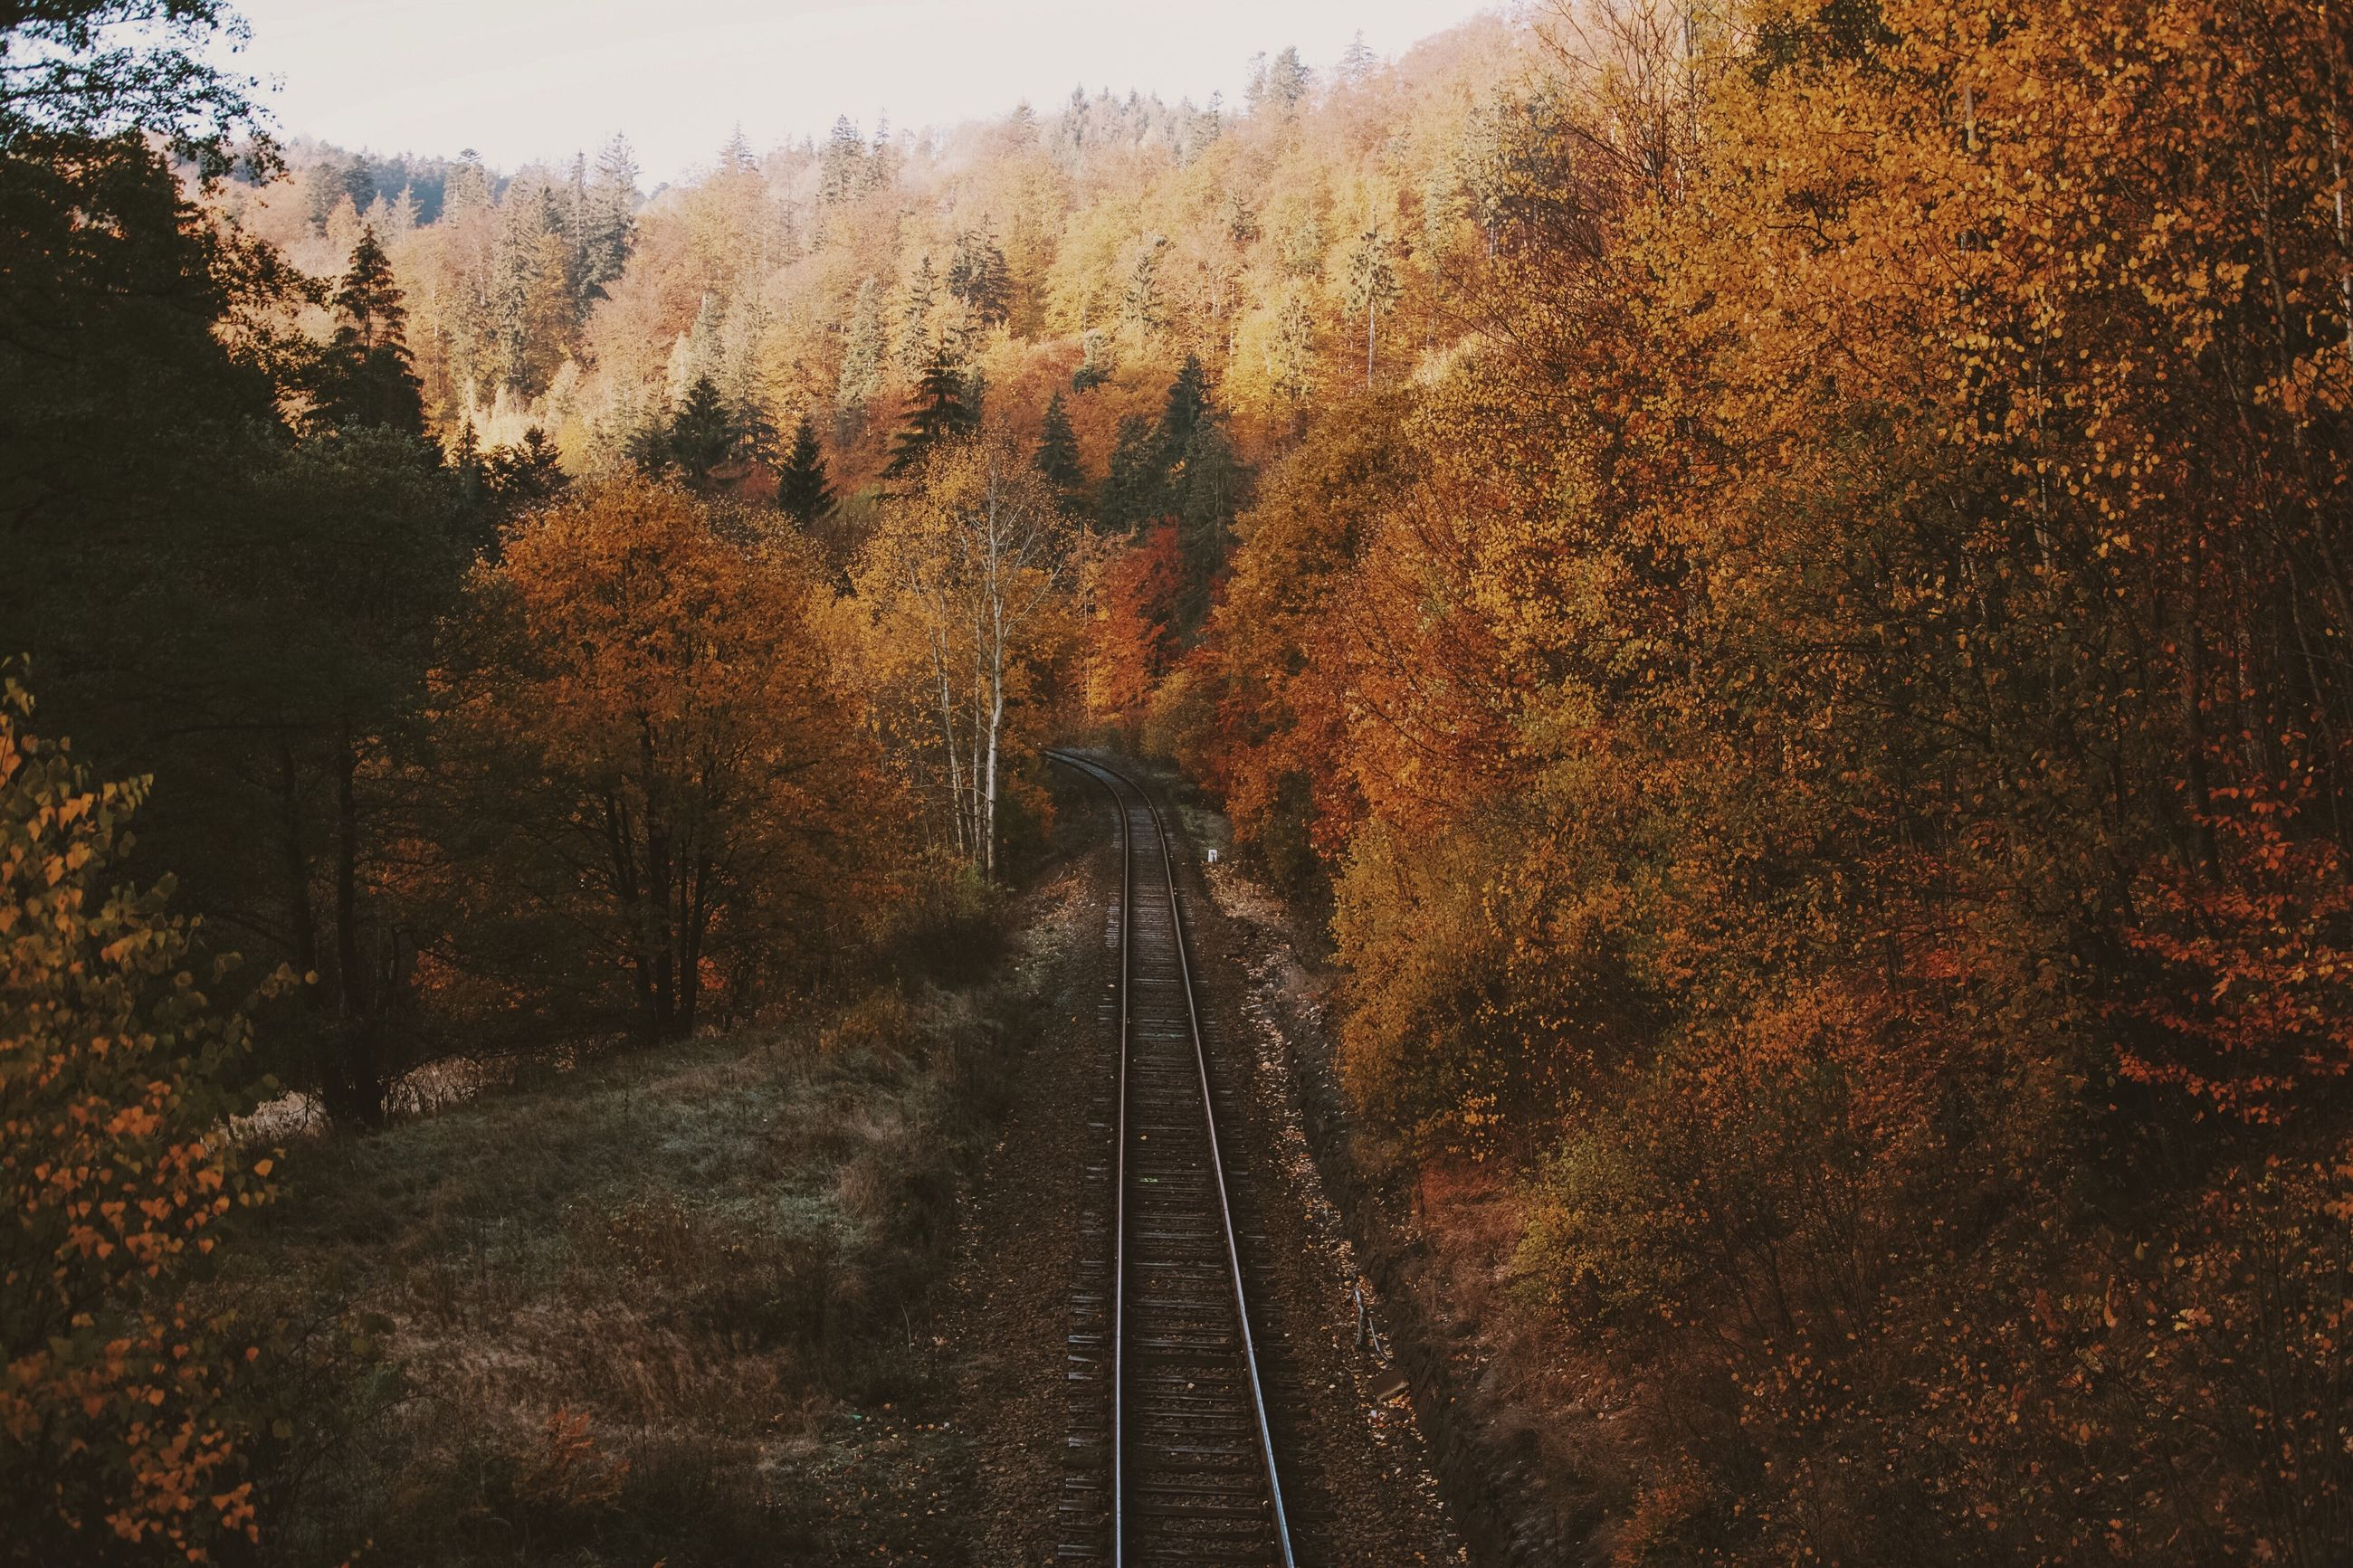 the way forward, transportation, tree, diminishing perspective, vanishing point, tranquility, railroad track, tranquil scene, nature, road, landscape, beauty in nature, rail transportation, forest, scenics, non-urban scene, outdoors, growth, sky, day